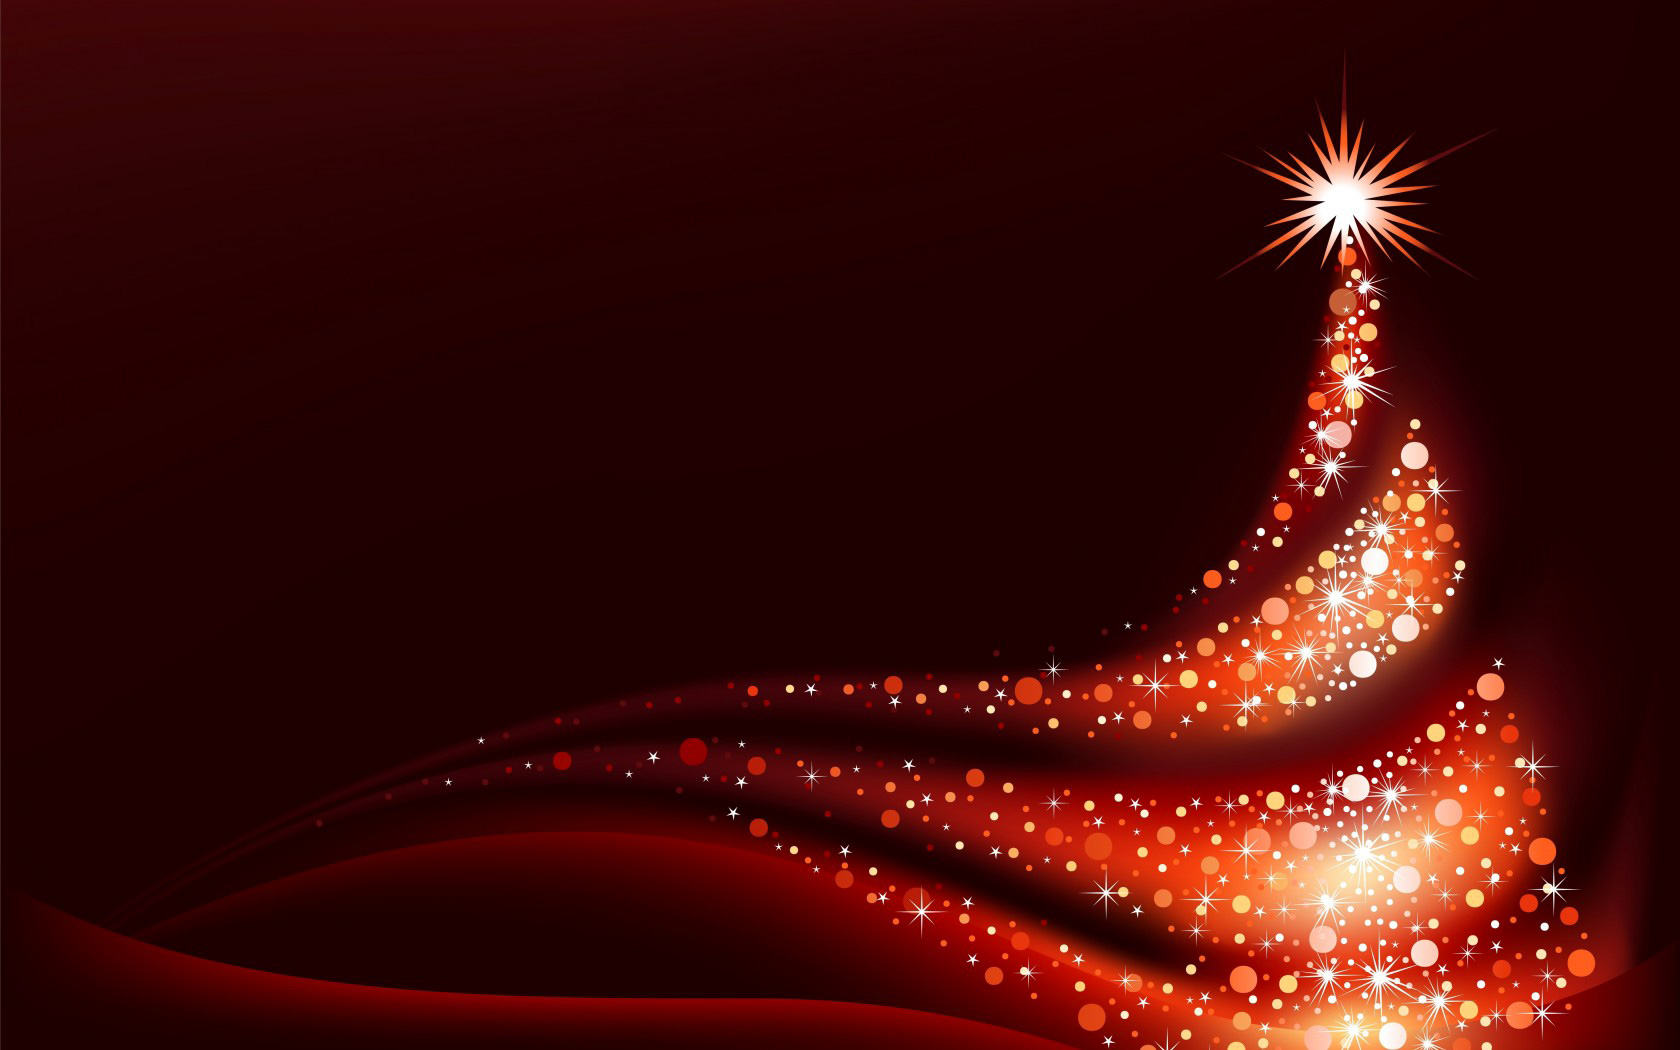 1680x1050 - Christmas Trees Backgrounds 20